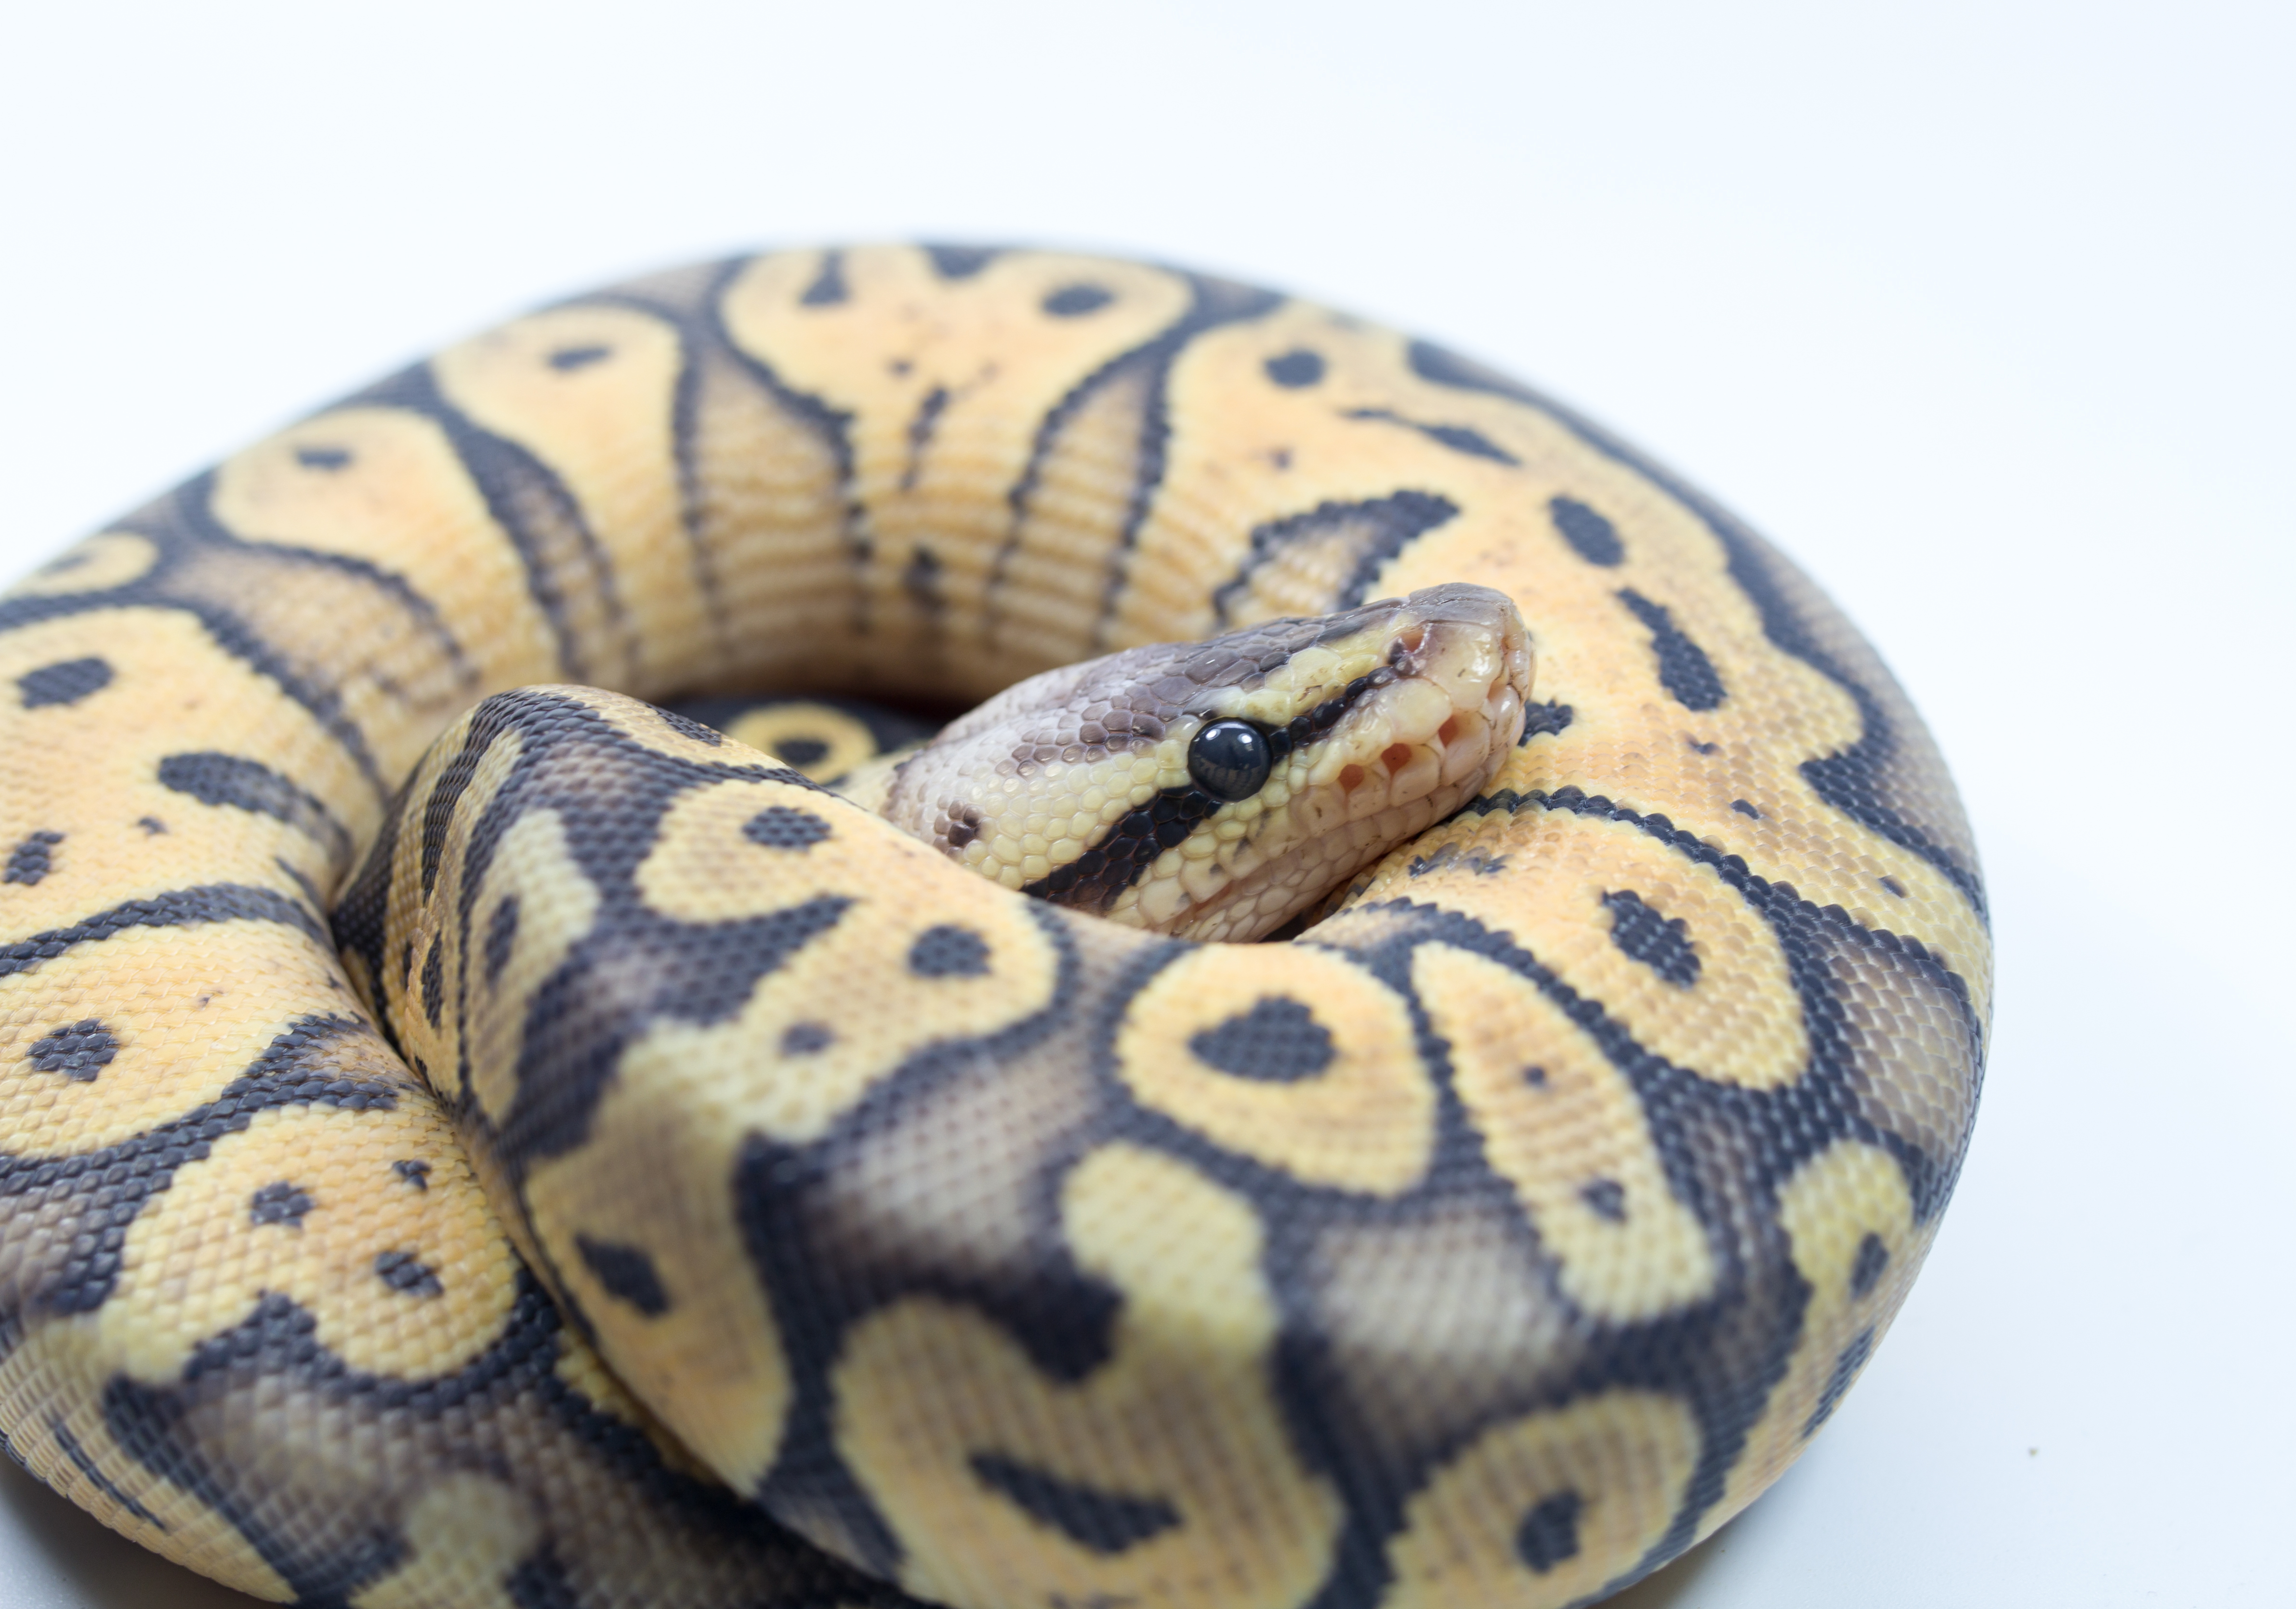 Pictured is a snake. SHUTTERSTOCK/viper345